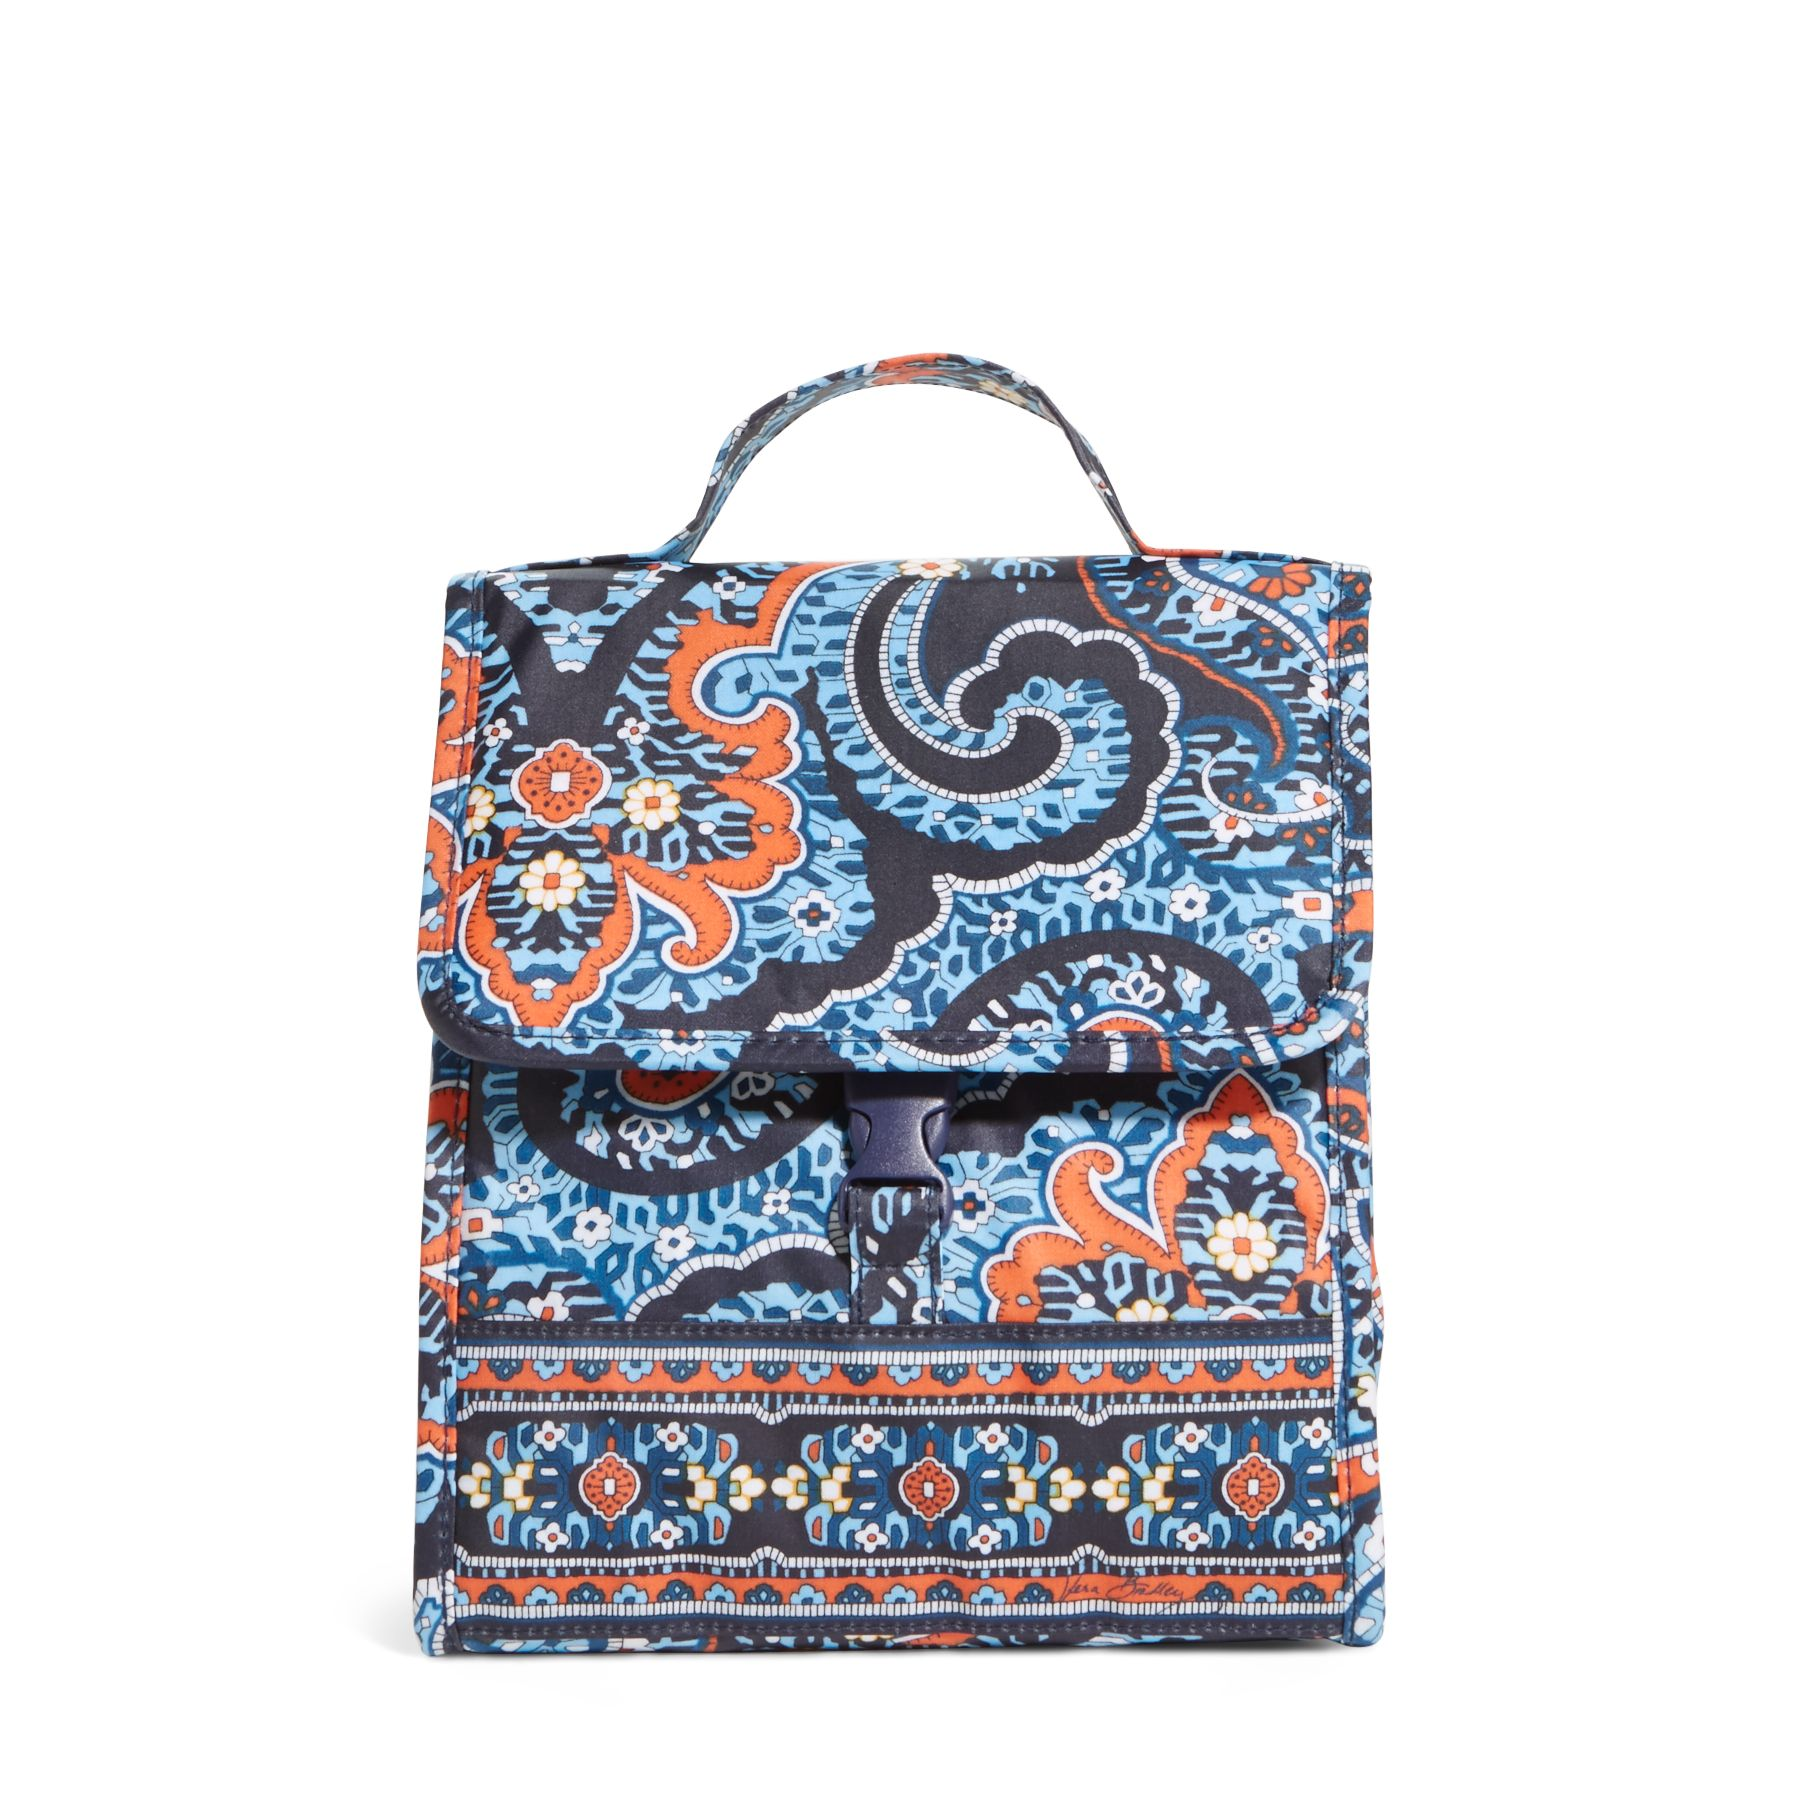 Vera Bradley Lunch Sack Bag in Marrakesh